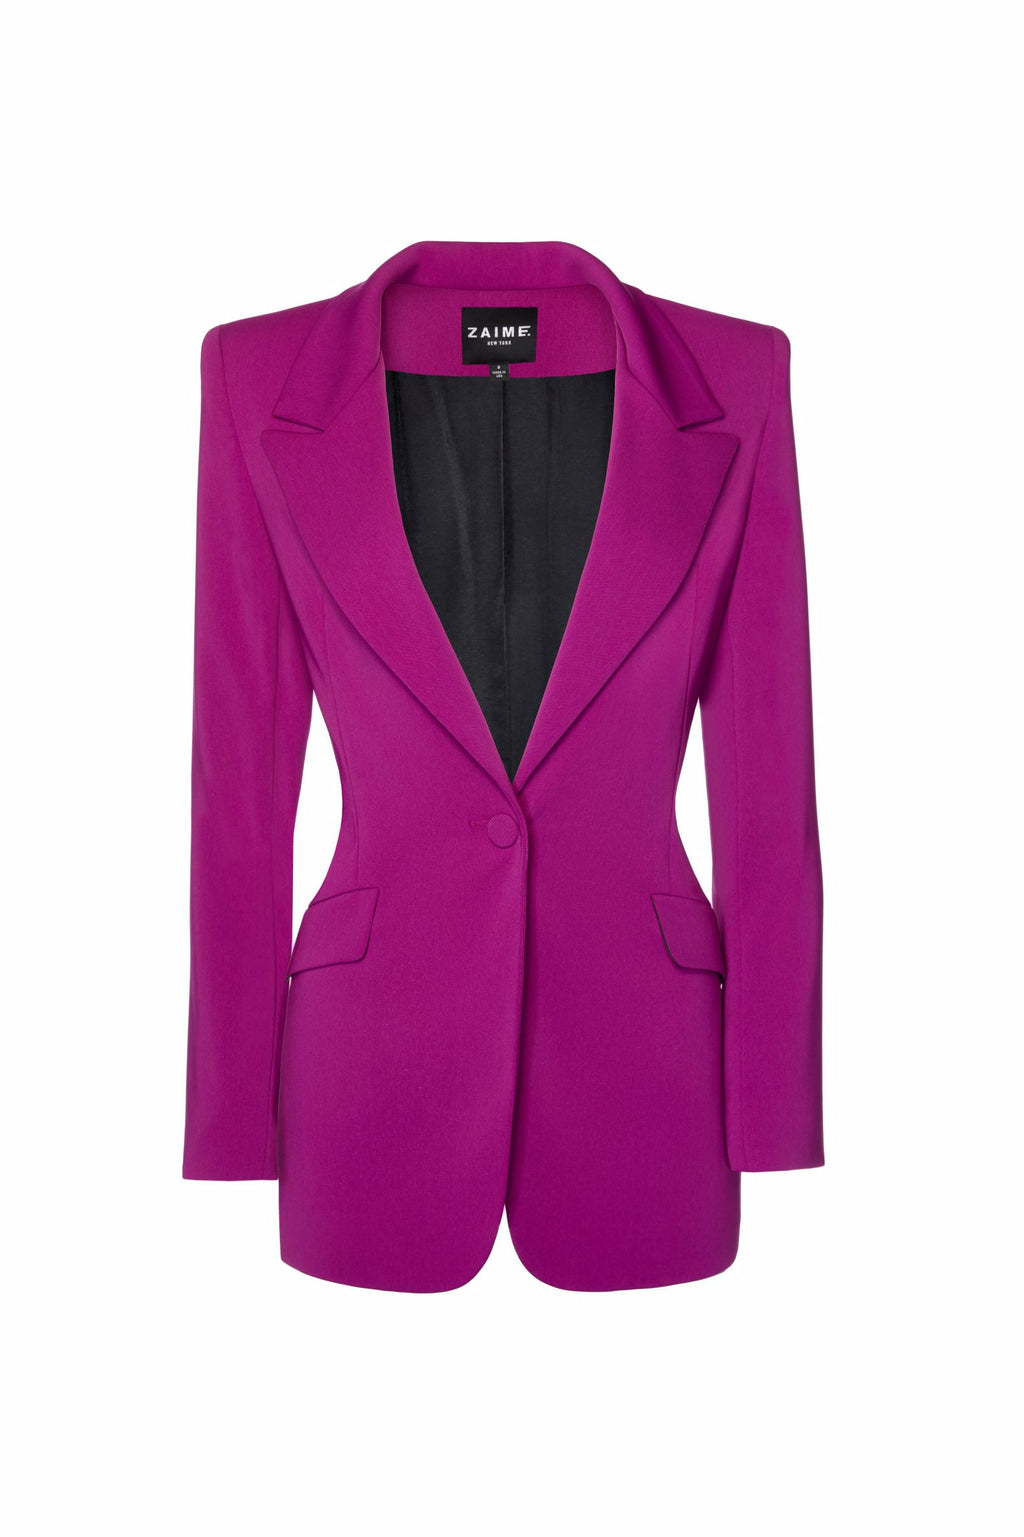 Janet Tailored Blazer - Magenta Purple